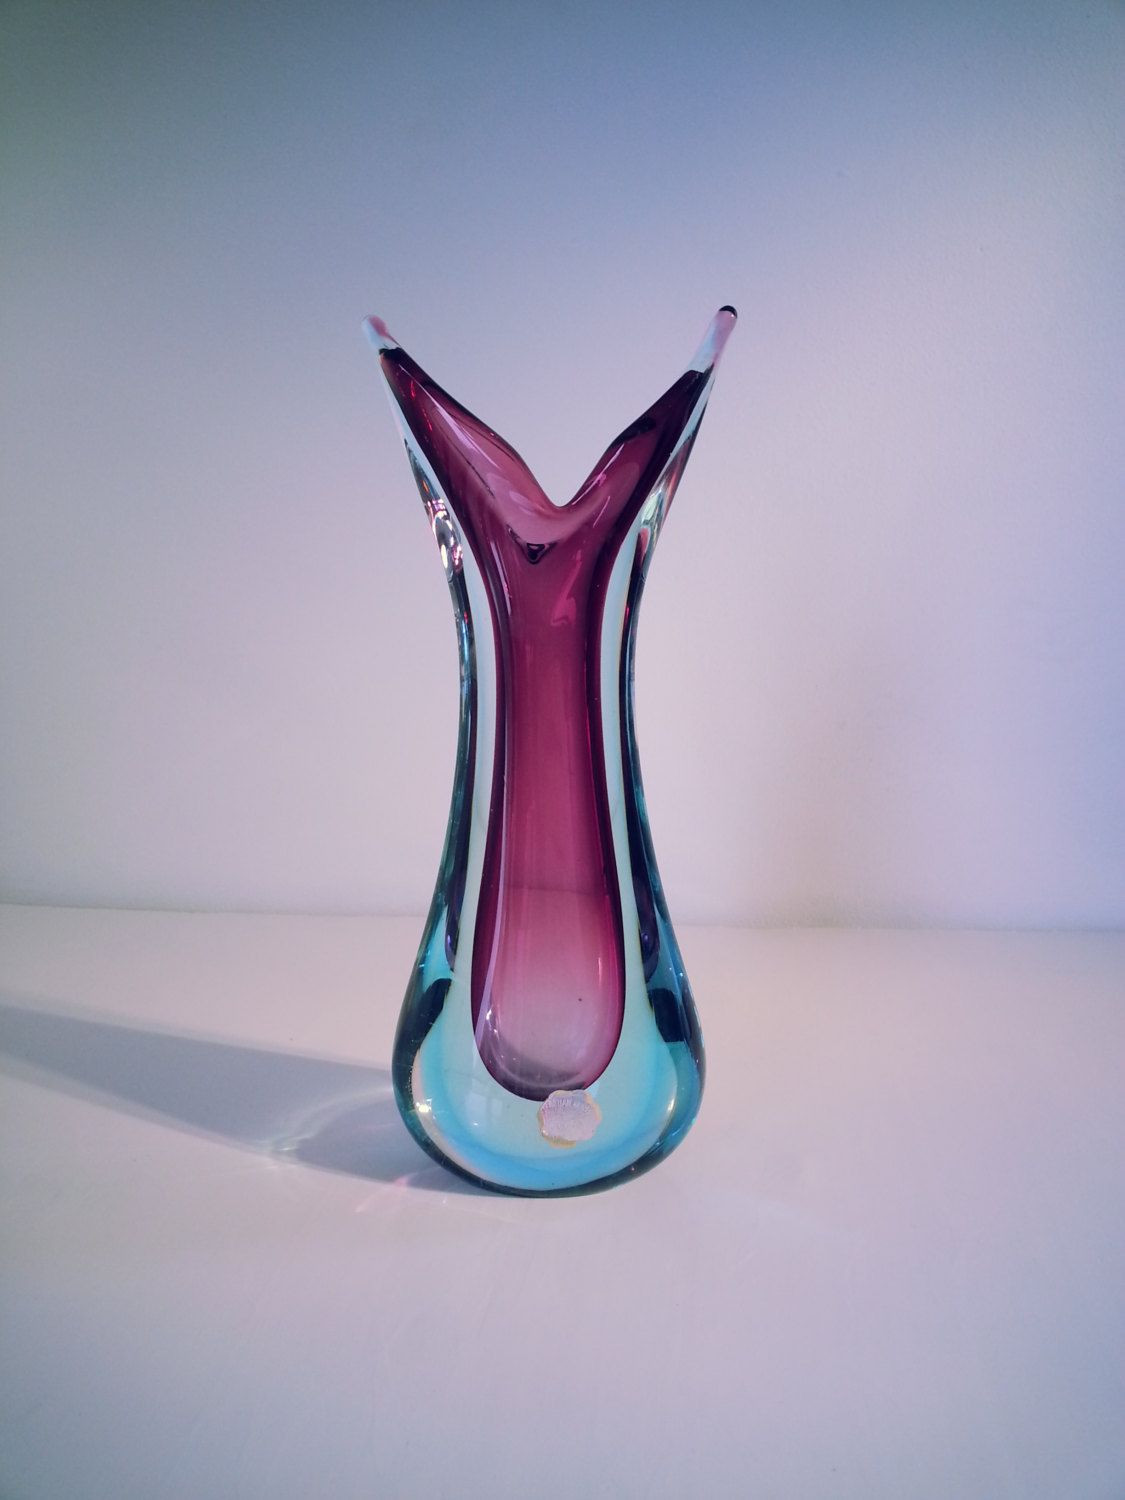 Glass Vase Making Of Murano sommerso Genuine Venetian Glass 1950s 1960s Purple Blue Regarding Murano sommerso Genuine Venetian Glass 1950s 1960s Purple Blue Glass Vase Pulled Design Vase Made In Italy by Fcollectables On Etsy